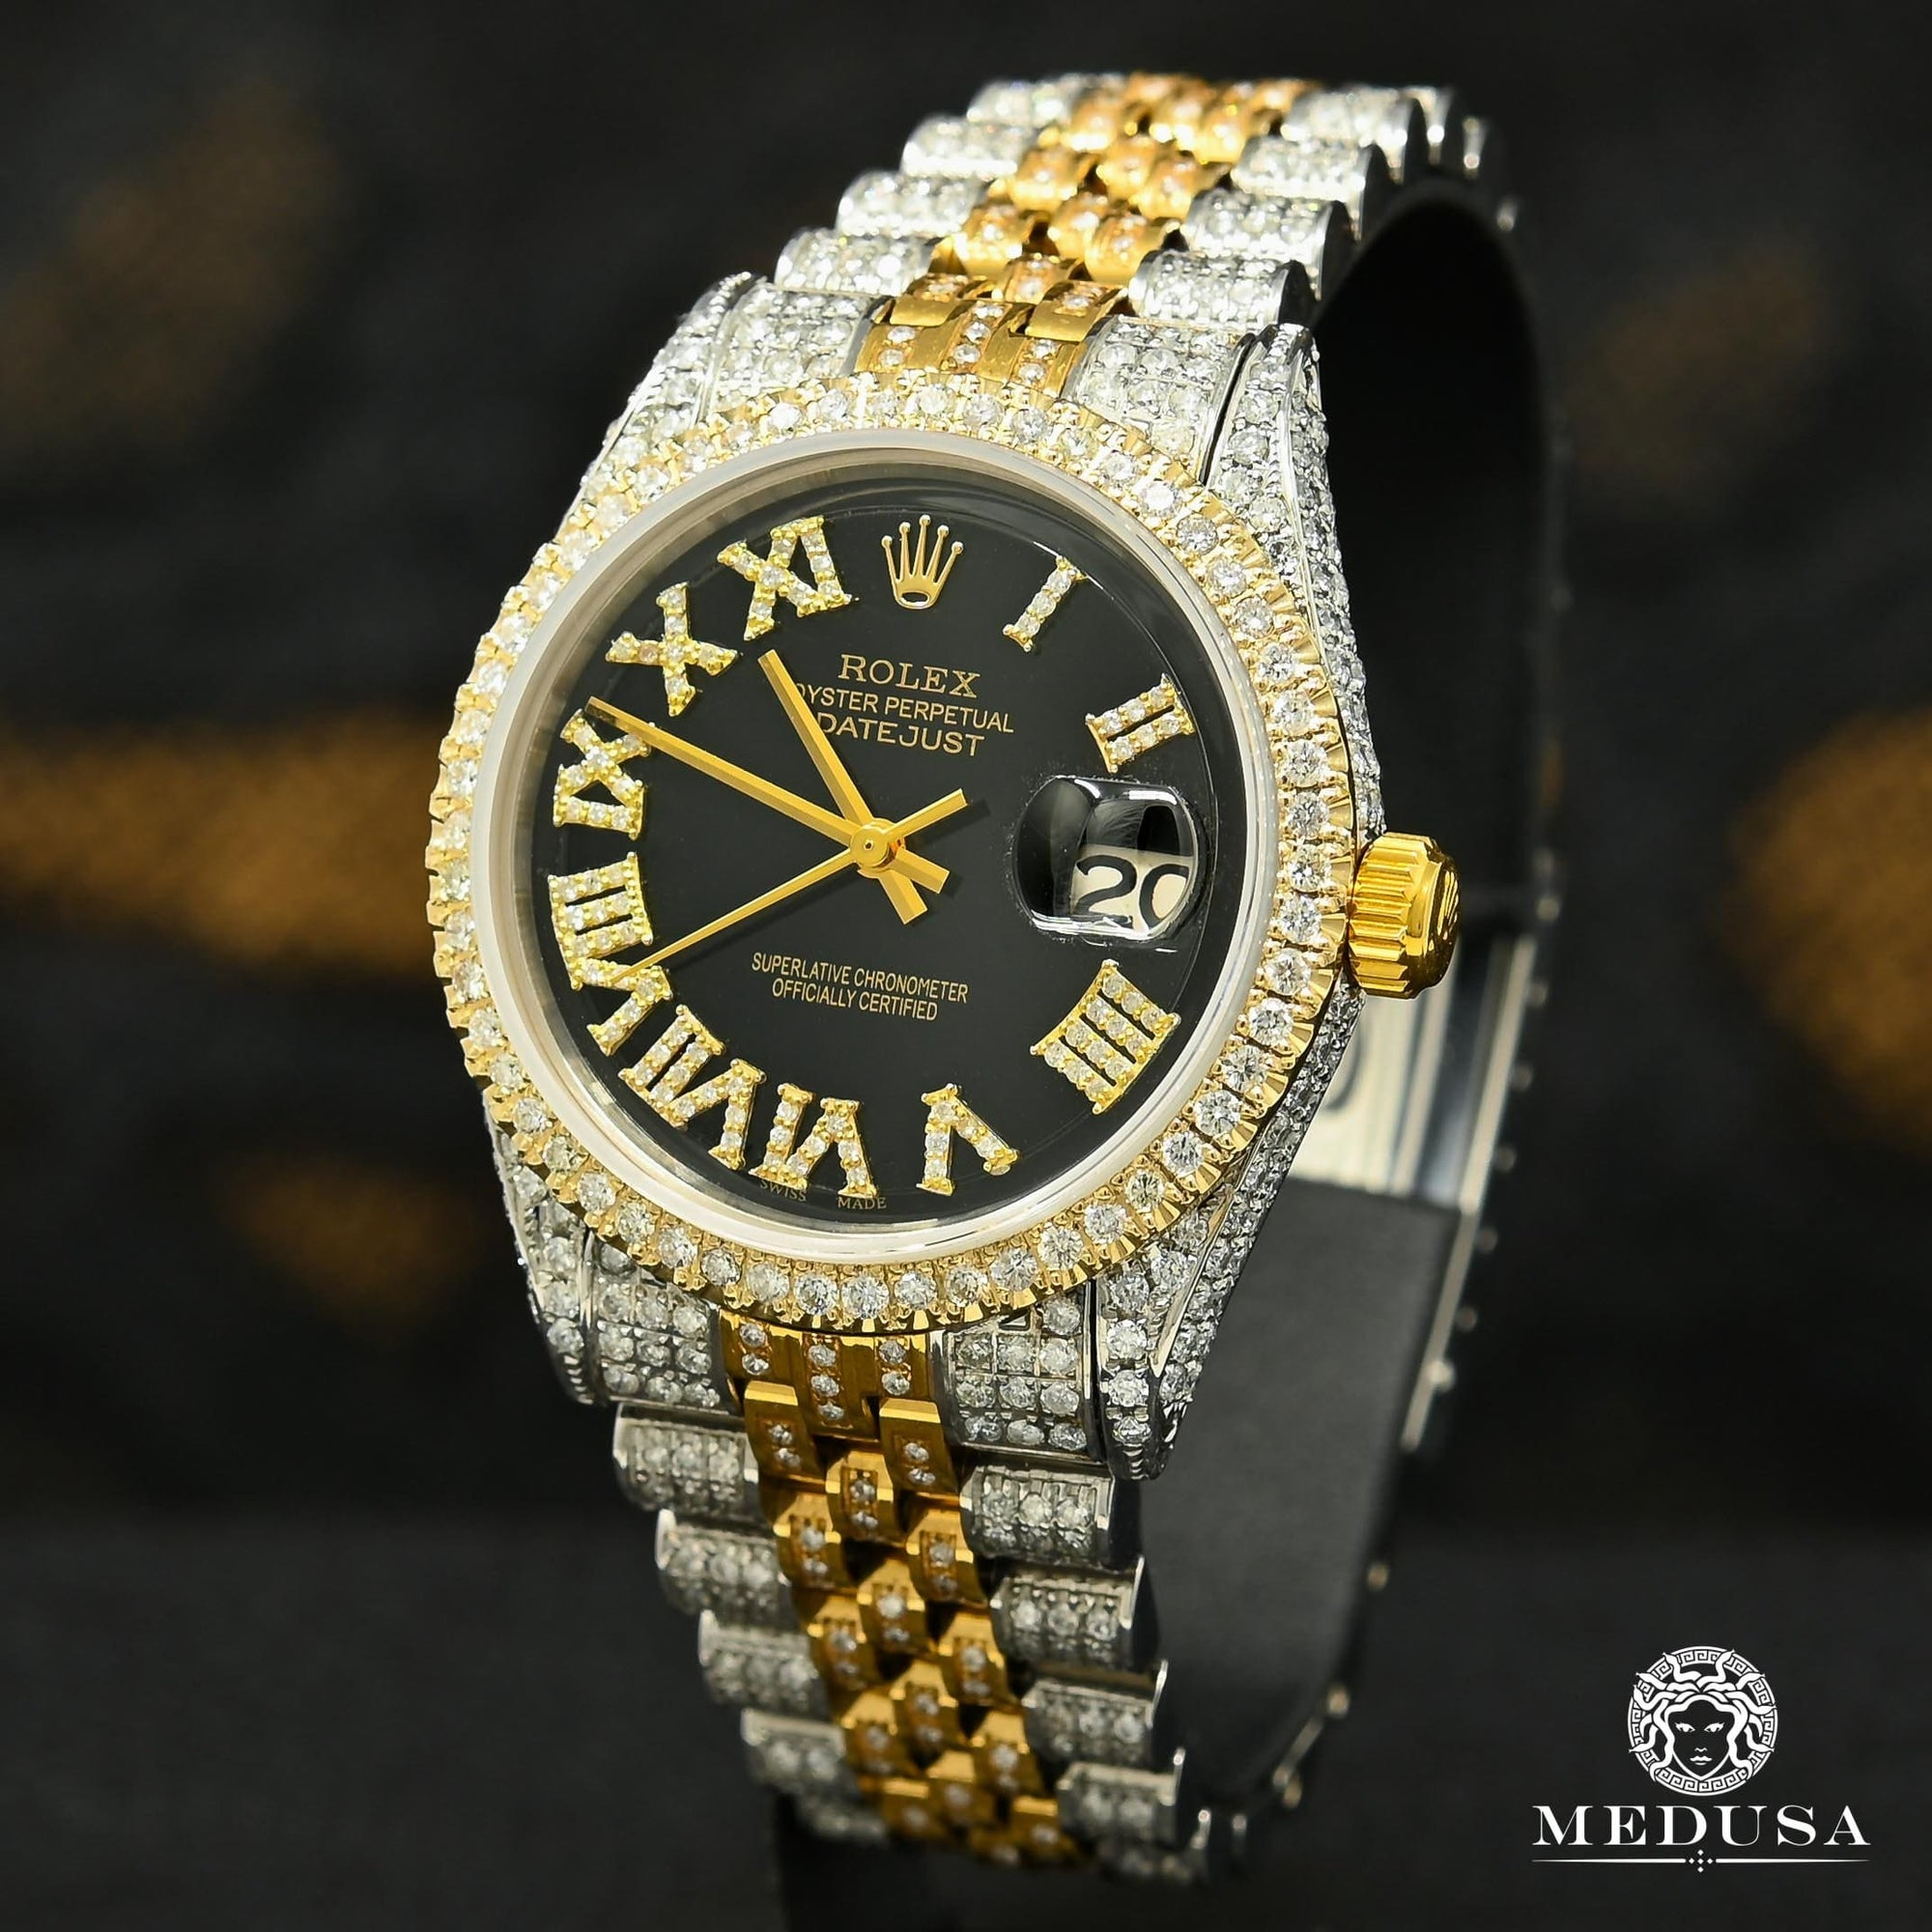 Montre Rolex | Montre Homme Rolex Datejust 36mm - Black Iced Out Or 2 Tons